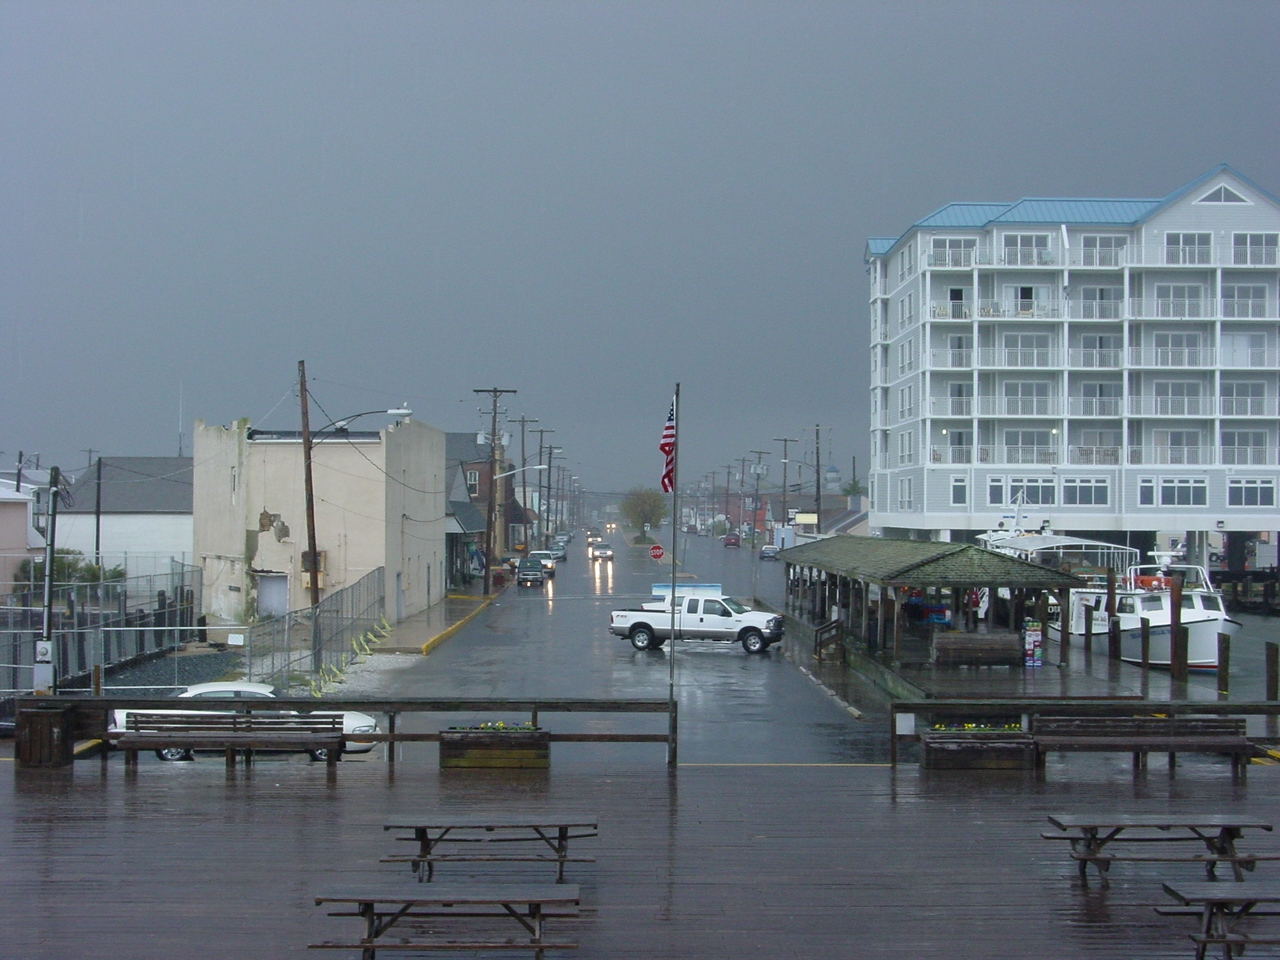 Click image for larger version  Name:rainy day.JPG Views:95 Size:816.8 KB ID:86594